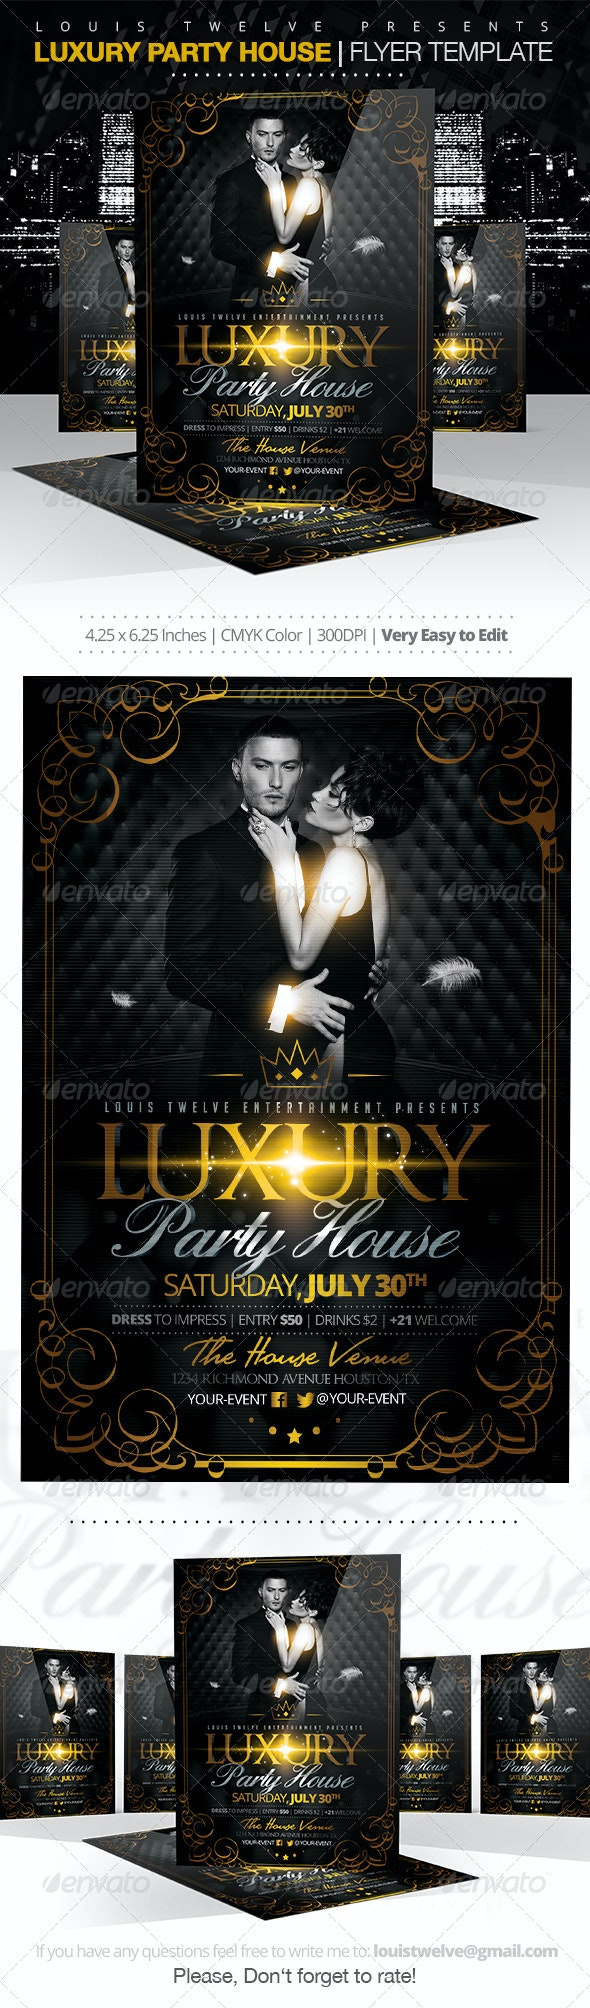 Luxury Party House | Flyer Template - Clubs & Parties Events